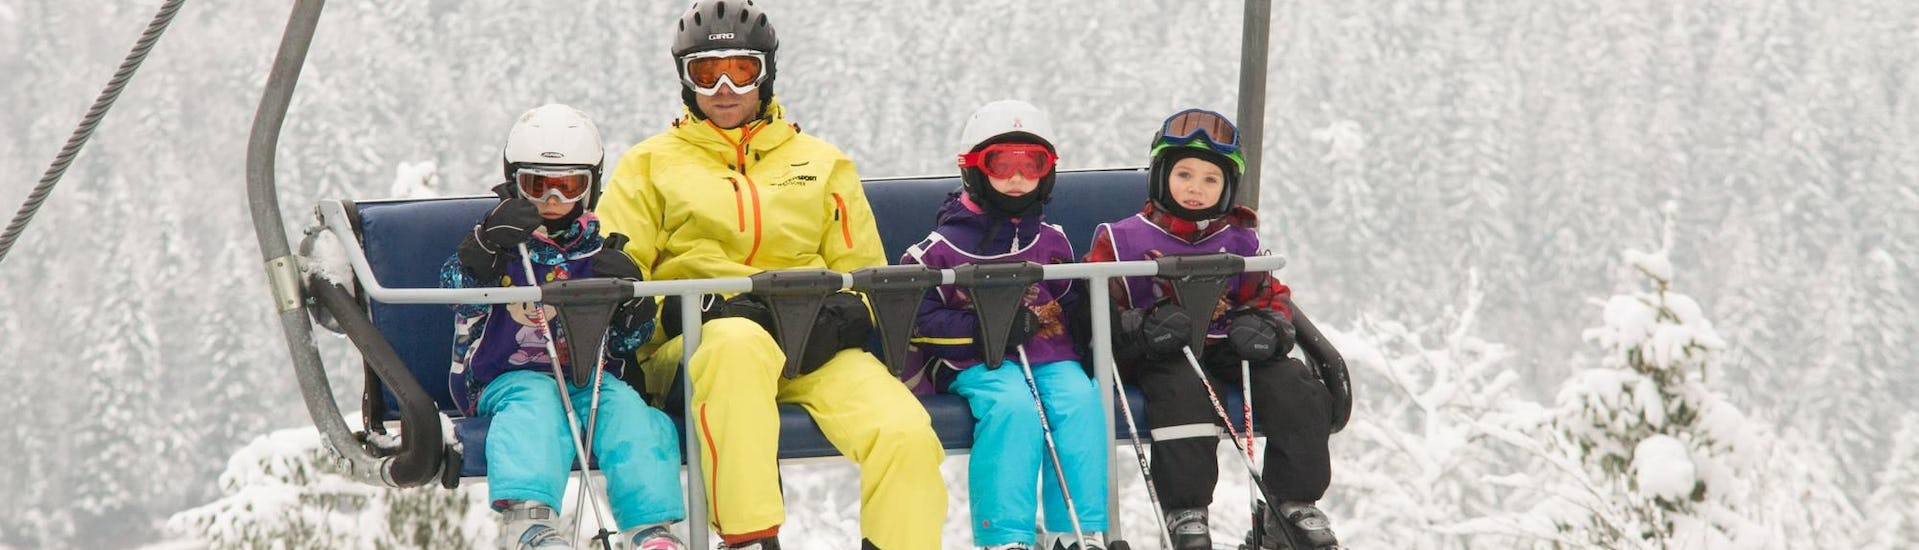 Ski Lessons for Kids (3-16 years) - 01.02-06.02